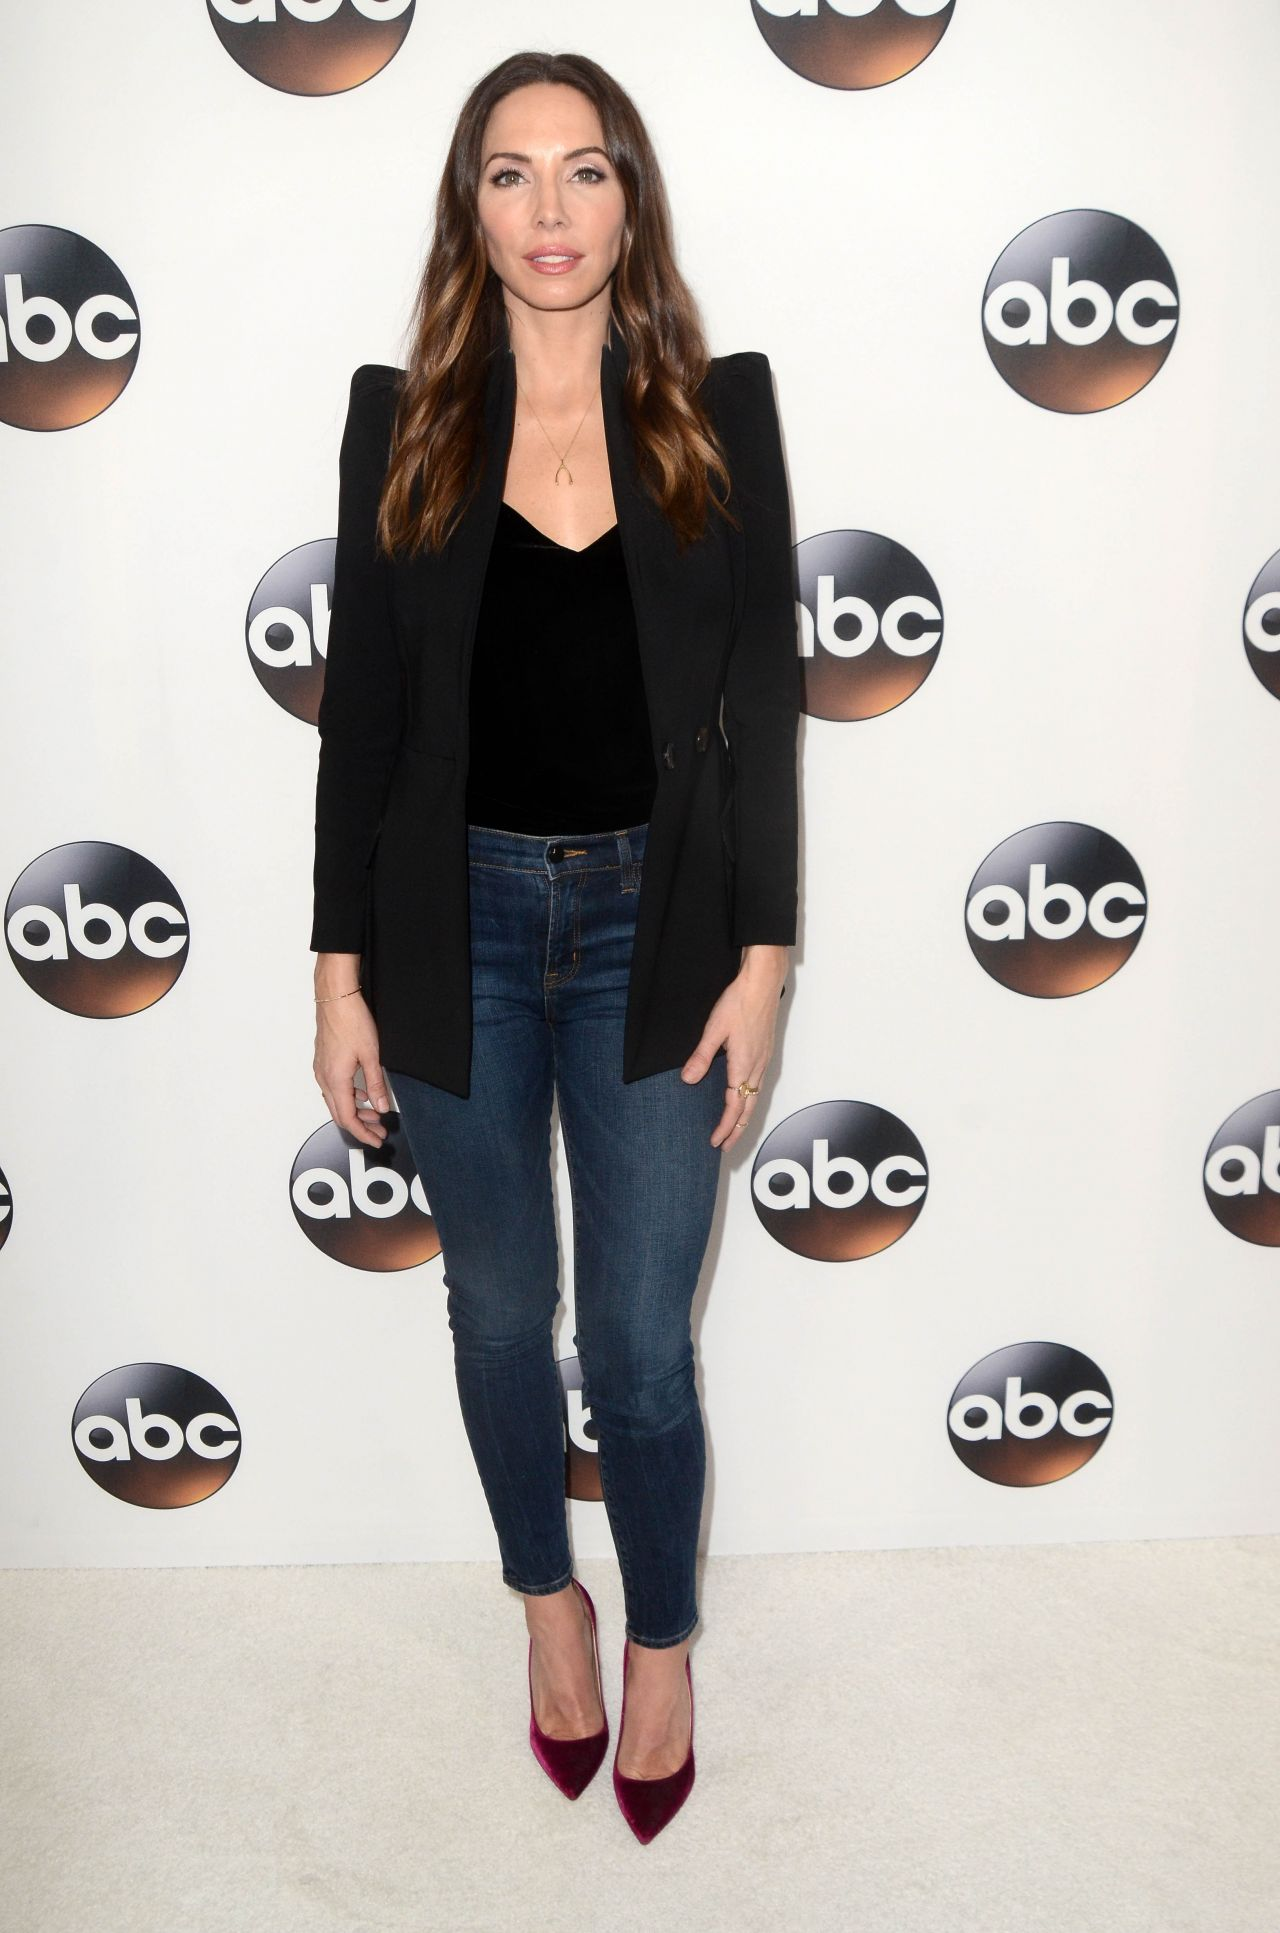 Whitney Cummings Abc All Star Party In La